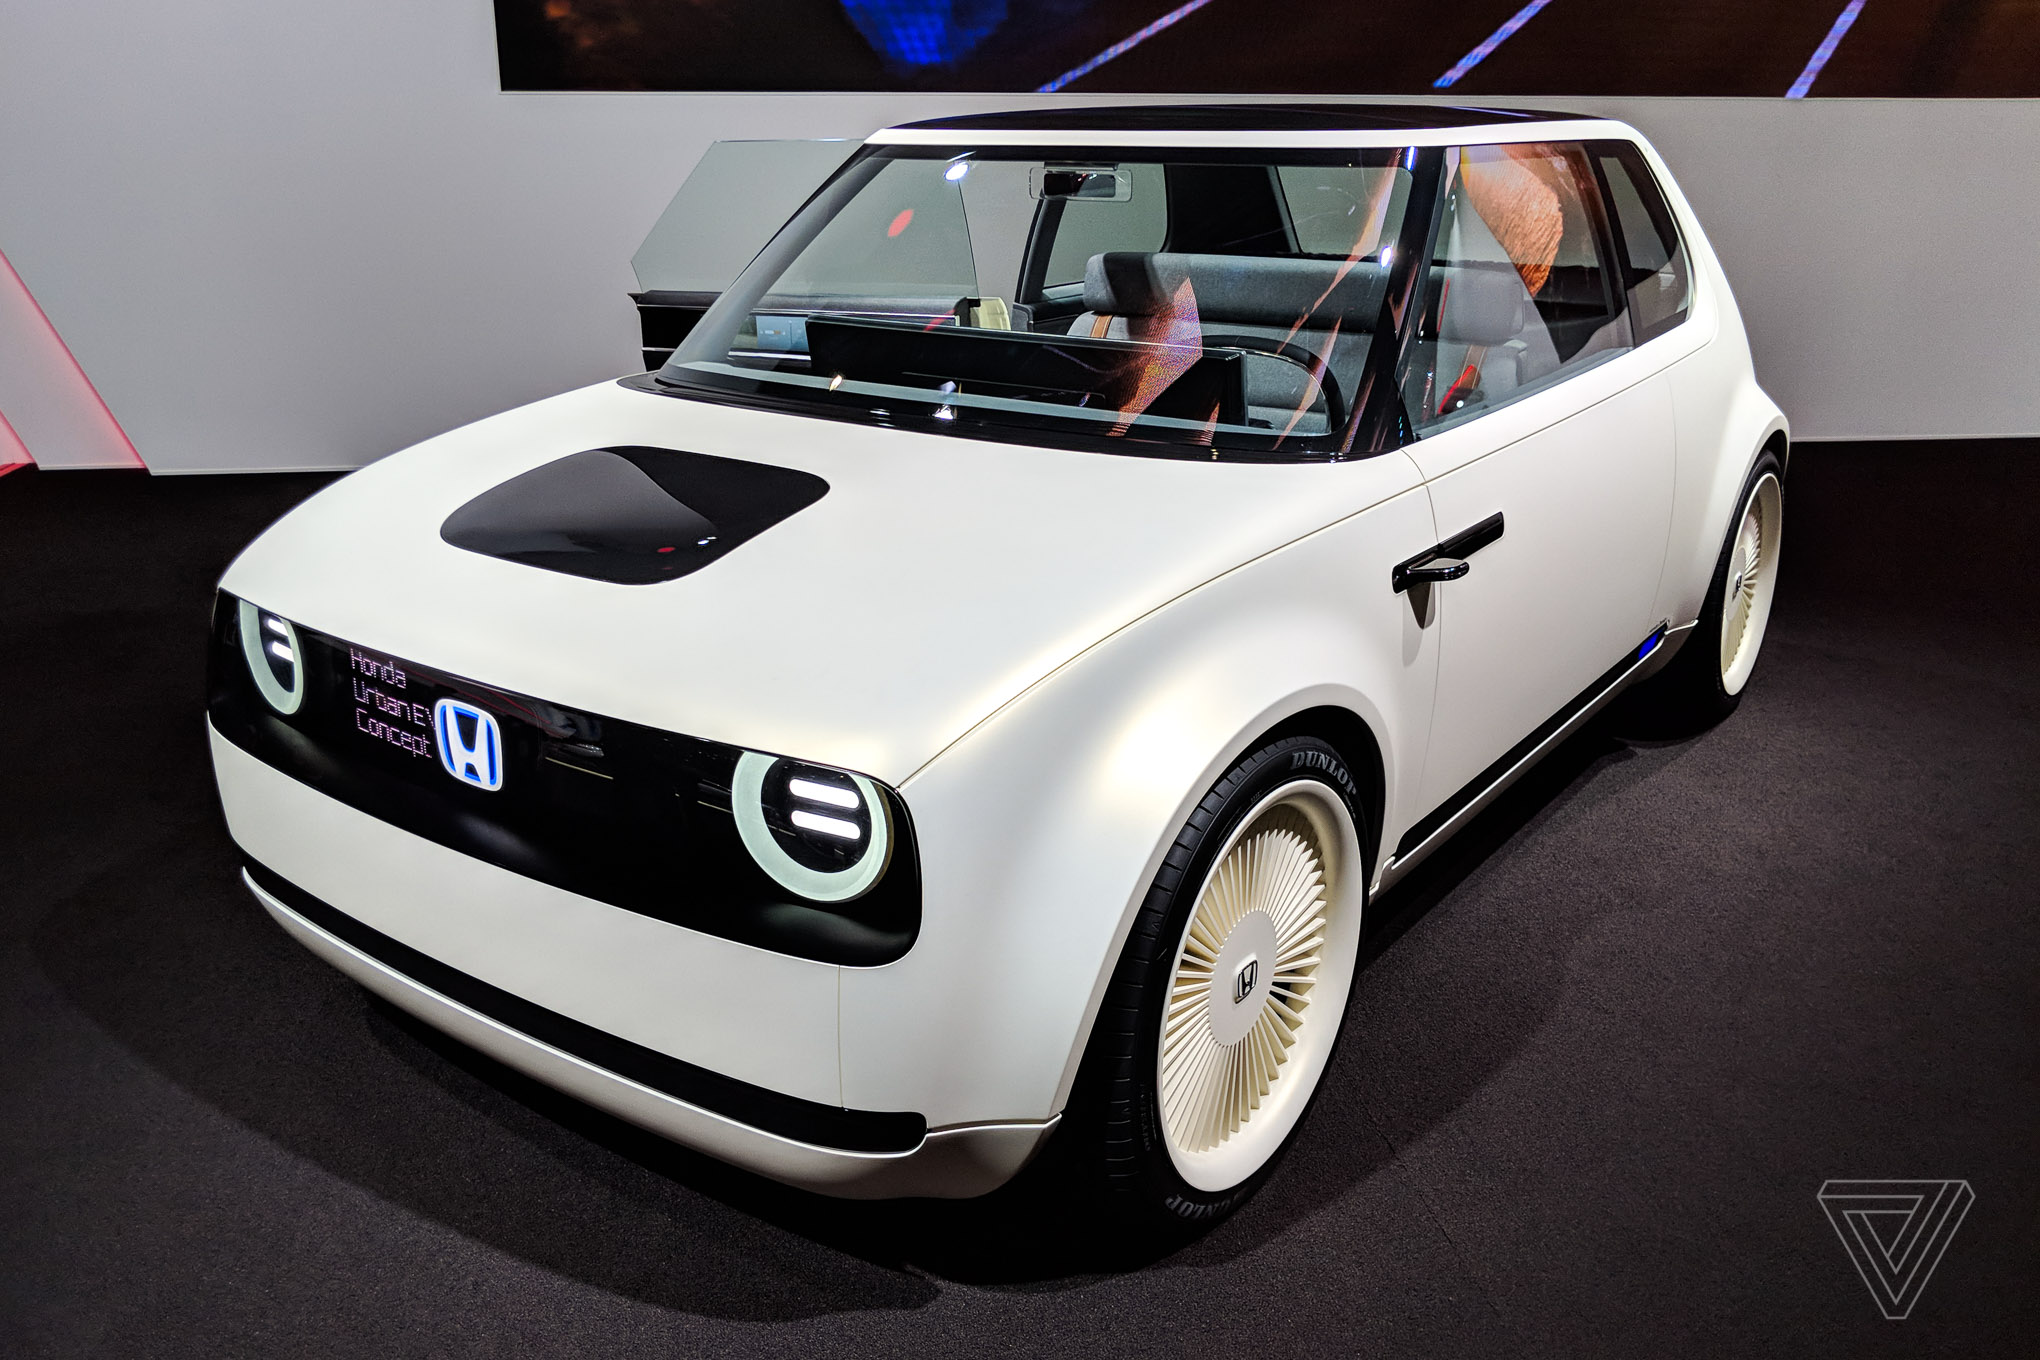 Honda's Urban EV Concept is even more adorable in the flesh - The Verge